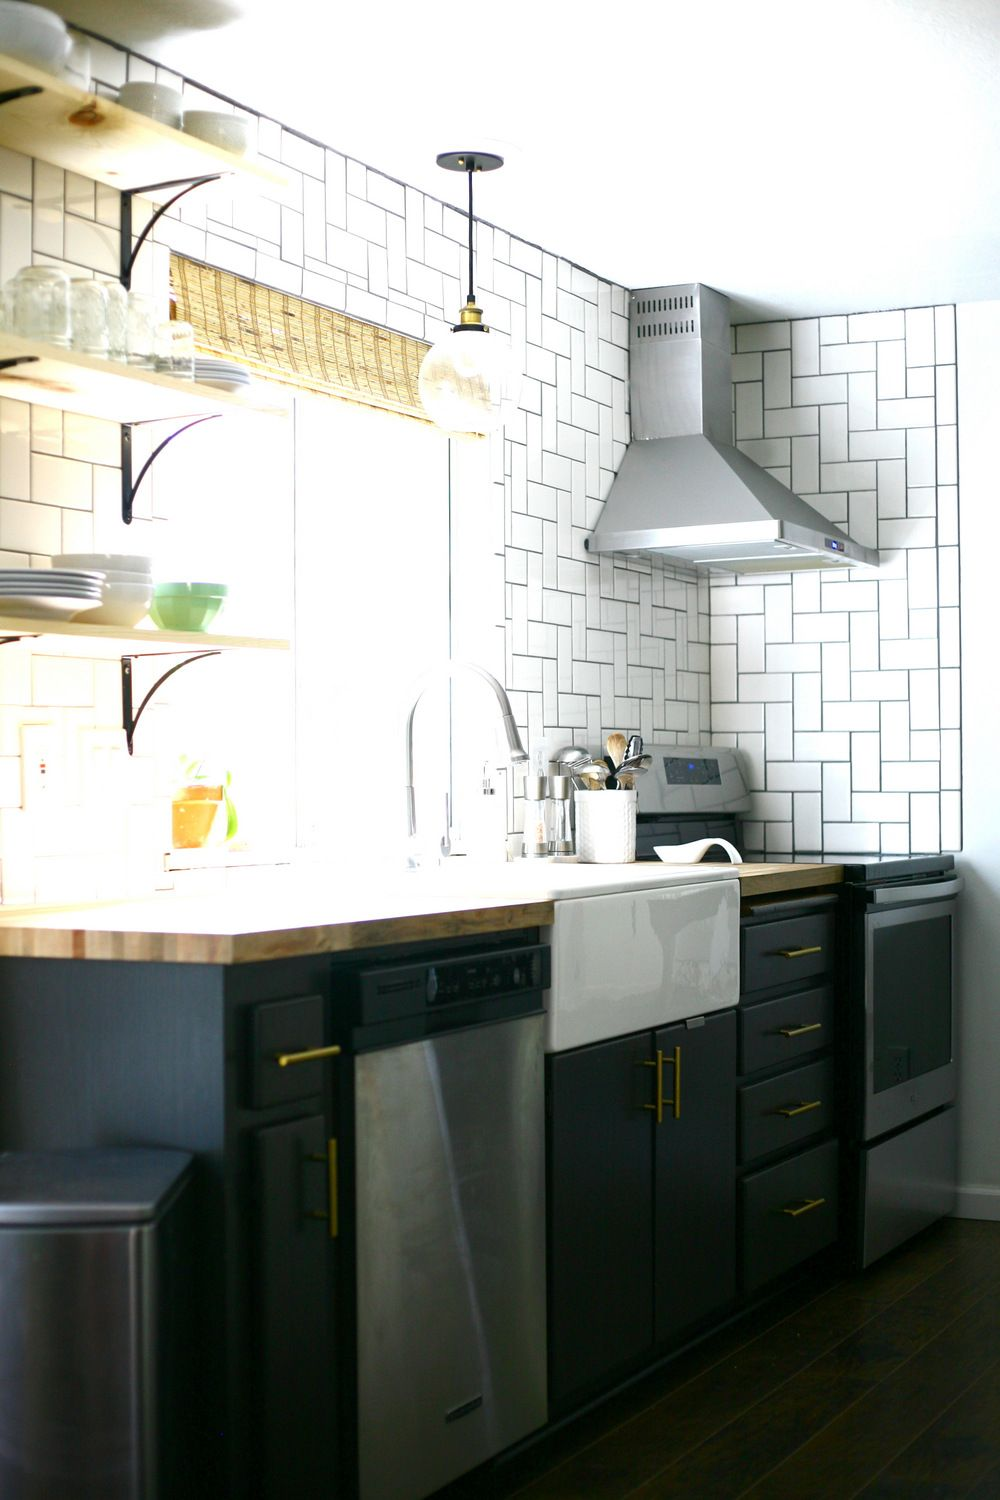 Why we didn't chose the IKEA Domsjo/Havsen sink for our